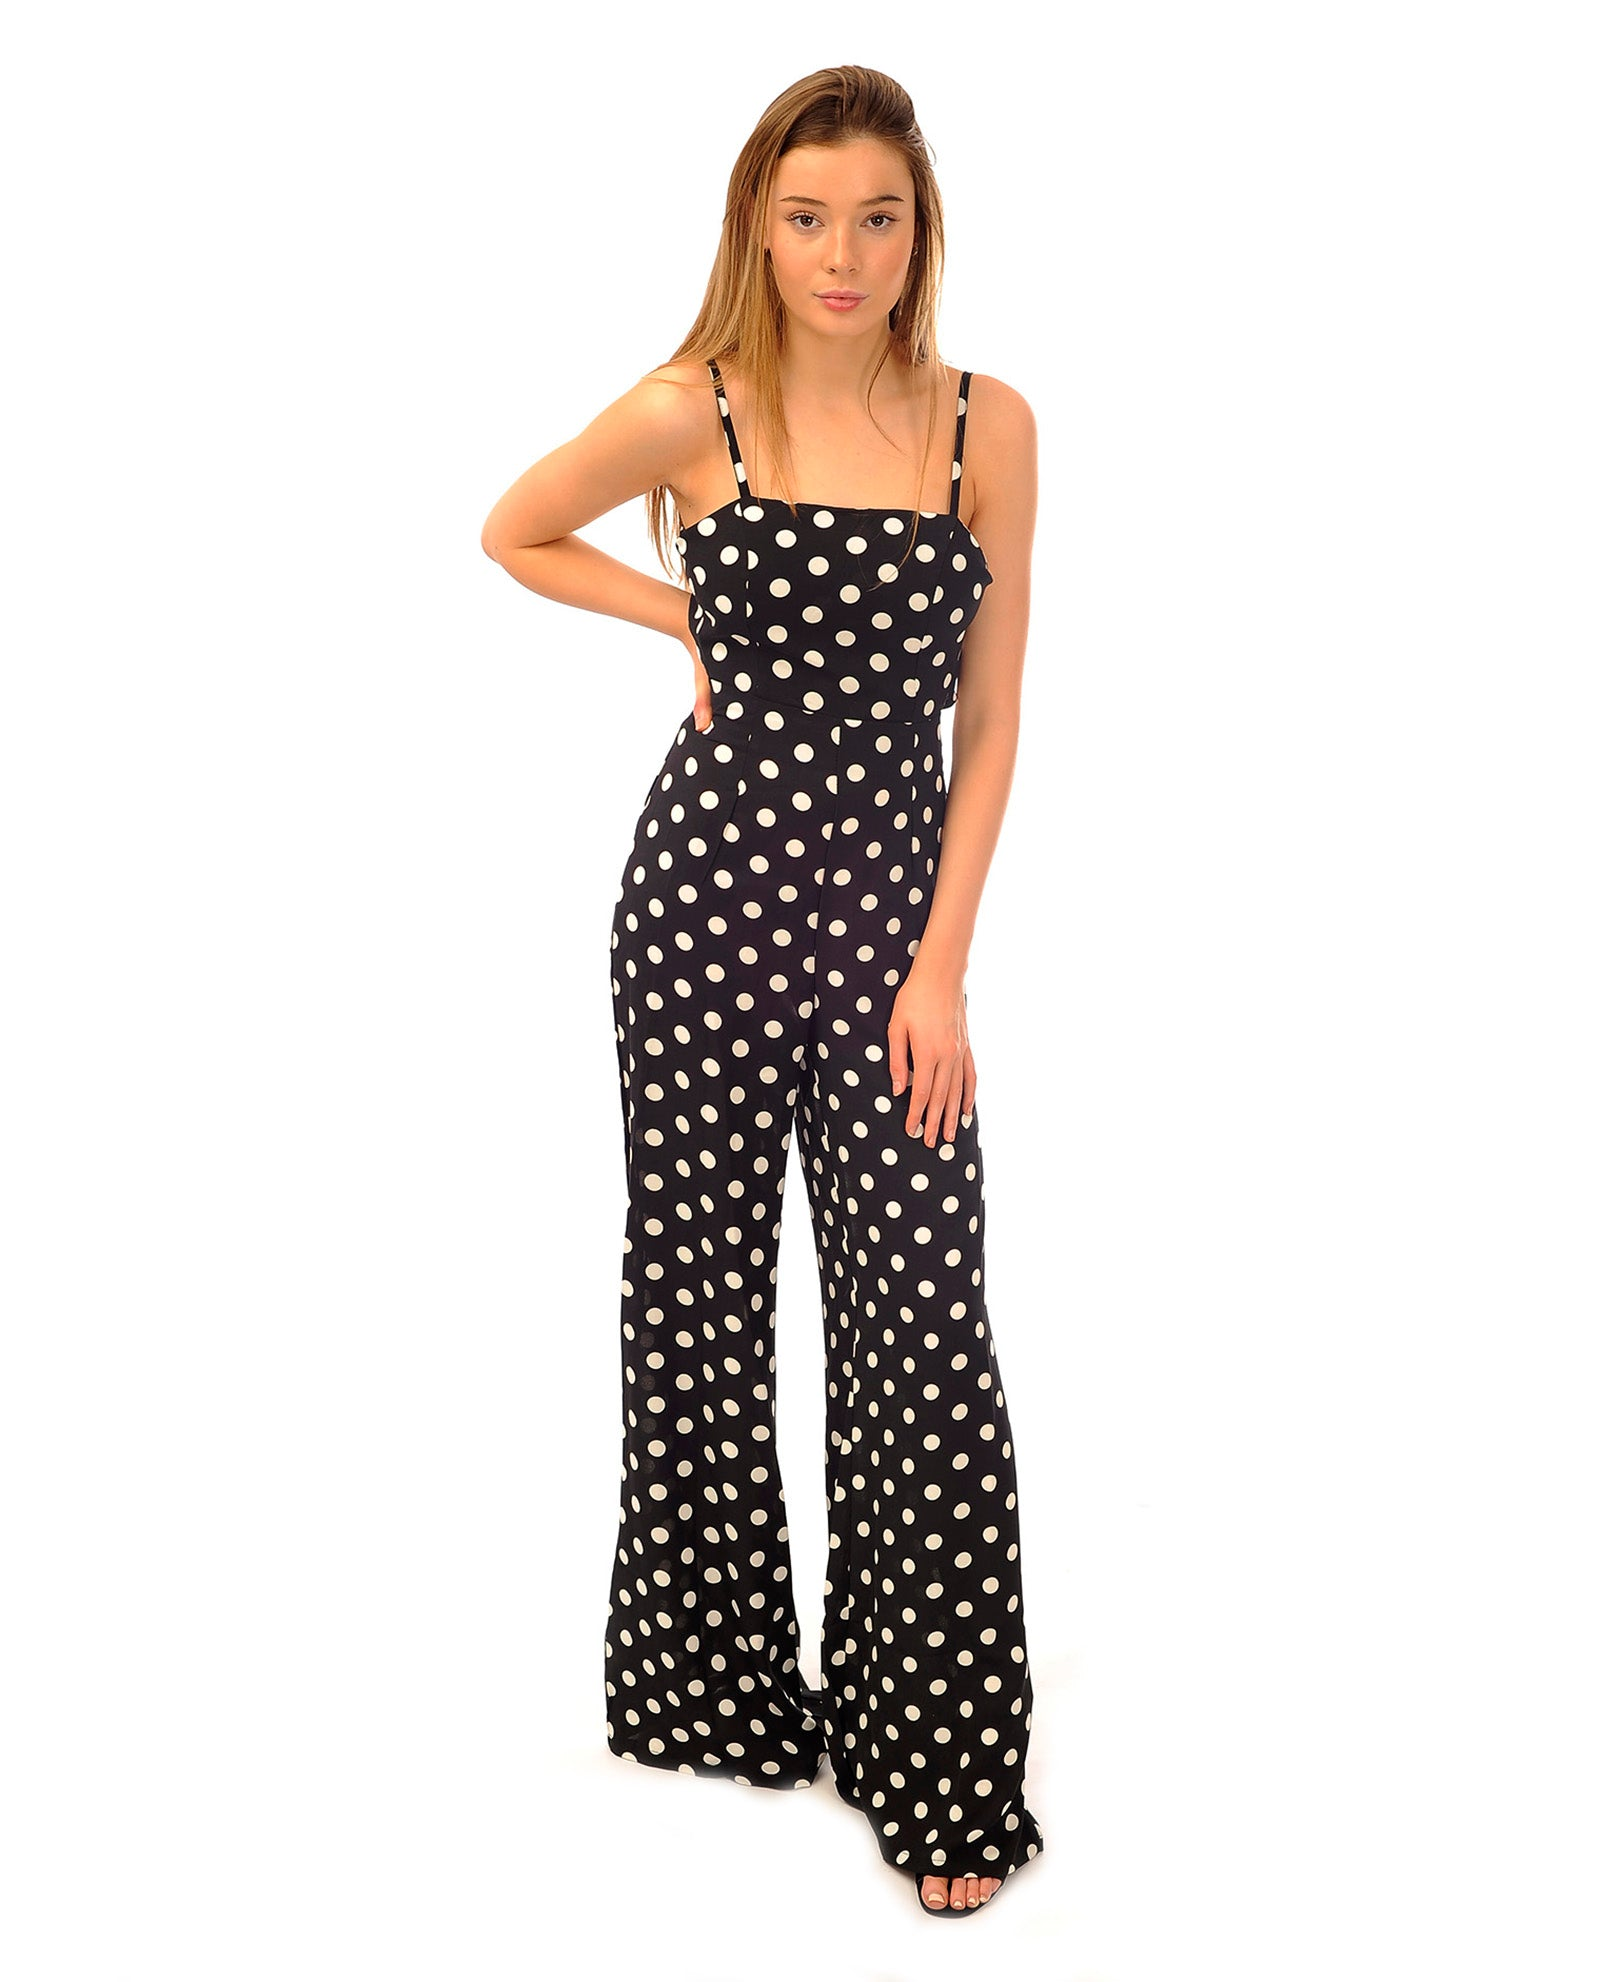 Rent a jumpsuit | Black and White polka dot jumpsuit | Hirestreetuk.com